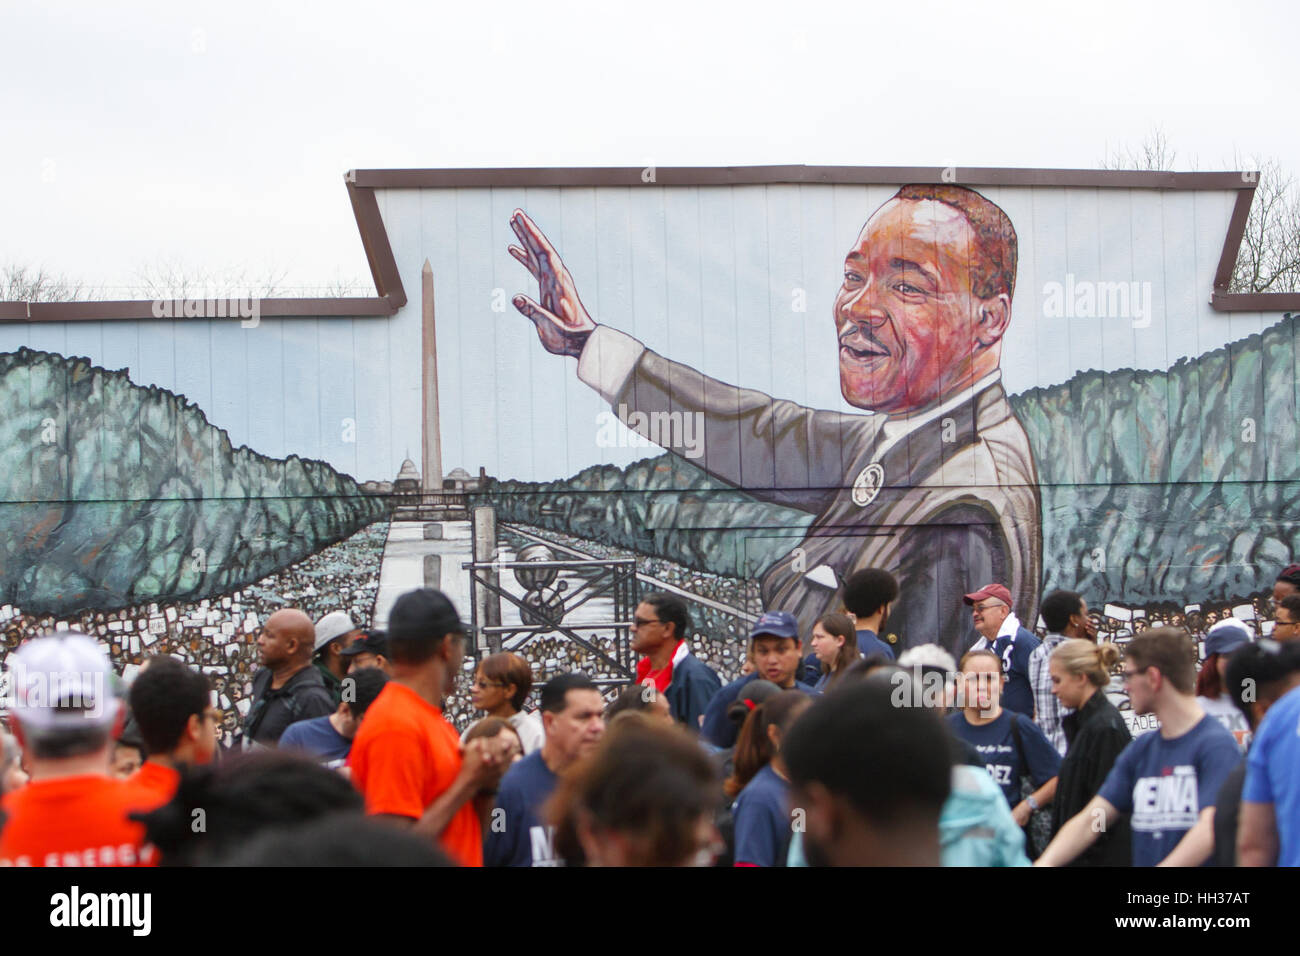 San Antonio, USA. 16th January, 2017. Marchers stand in front of a mural of Martin Luther King, Jr. before the annual Stock Foto